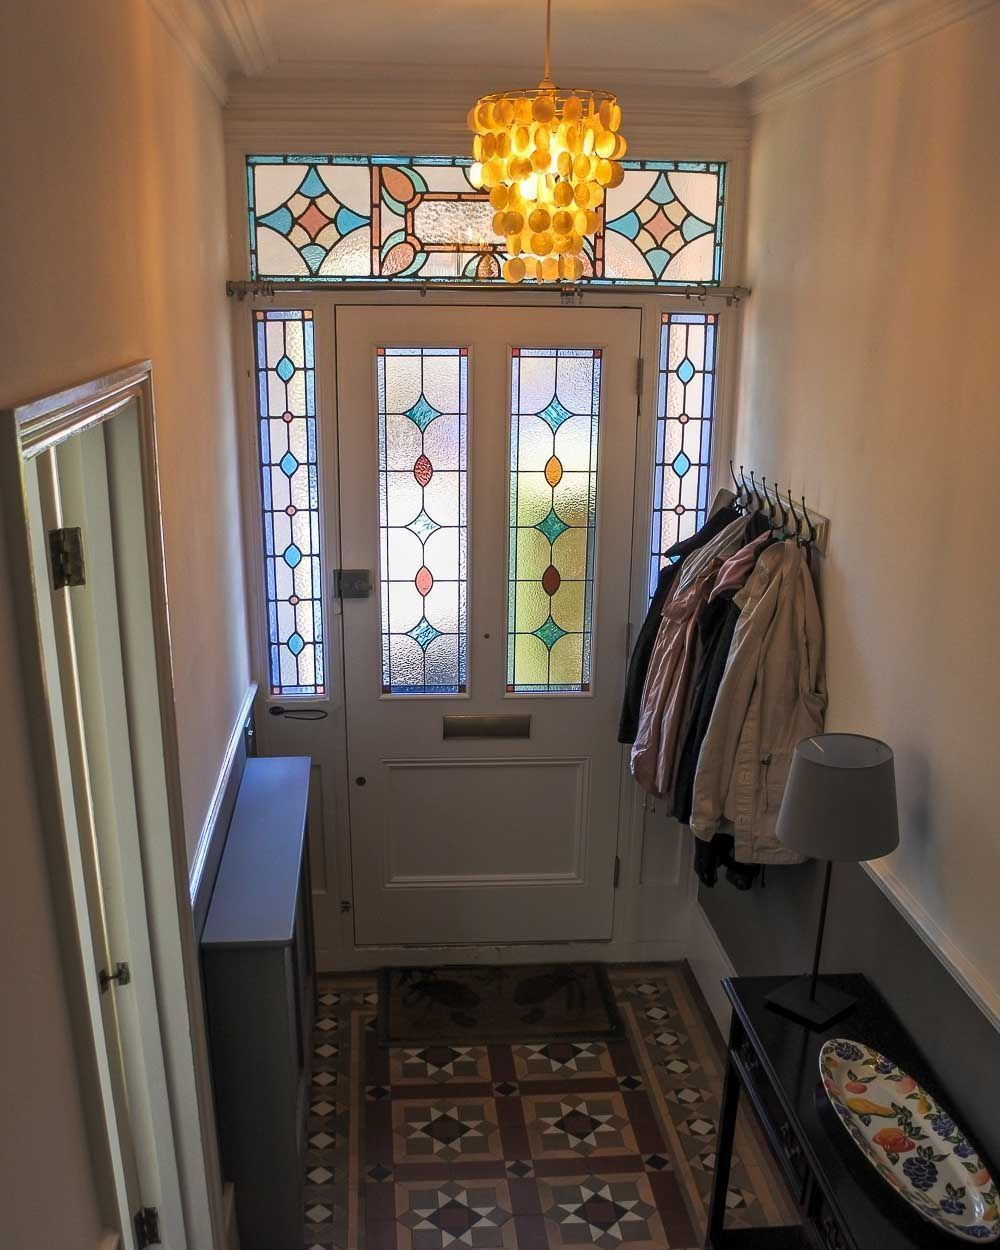 Stained glass Victorian front door in an impressive hallway #victorianfrontdoors Stained glass Victorian front door in an impressive hallway #victorianfrontdoors Stained glass Victorian front door in an impressive hallway #victorianfrontdoors Stained glass Victorian front door in an impressive hallway #victorianfrontdoors Stained glass Victorian front door in an impressive hallway #victorianfrontdoors Stained glass Victorian front door in an impressive hallway #victorianfrontdoors Stained glass #victorianfrontdoors